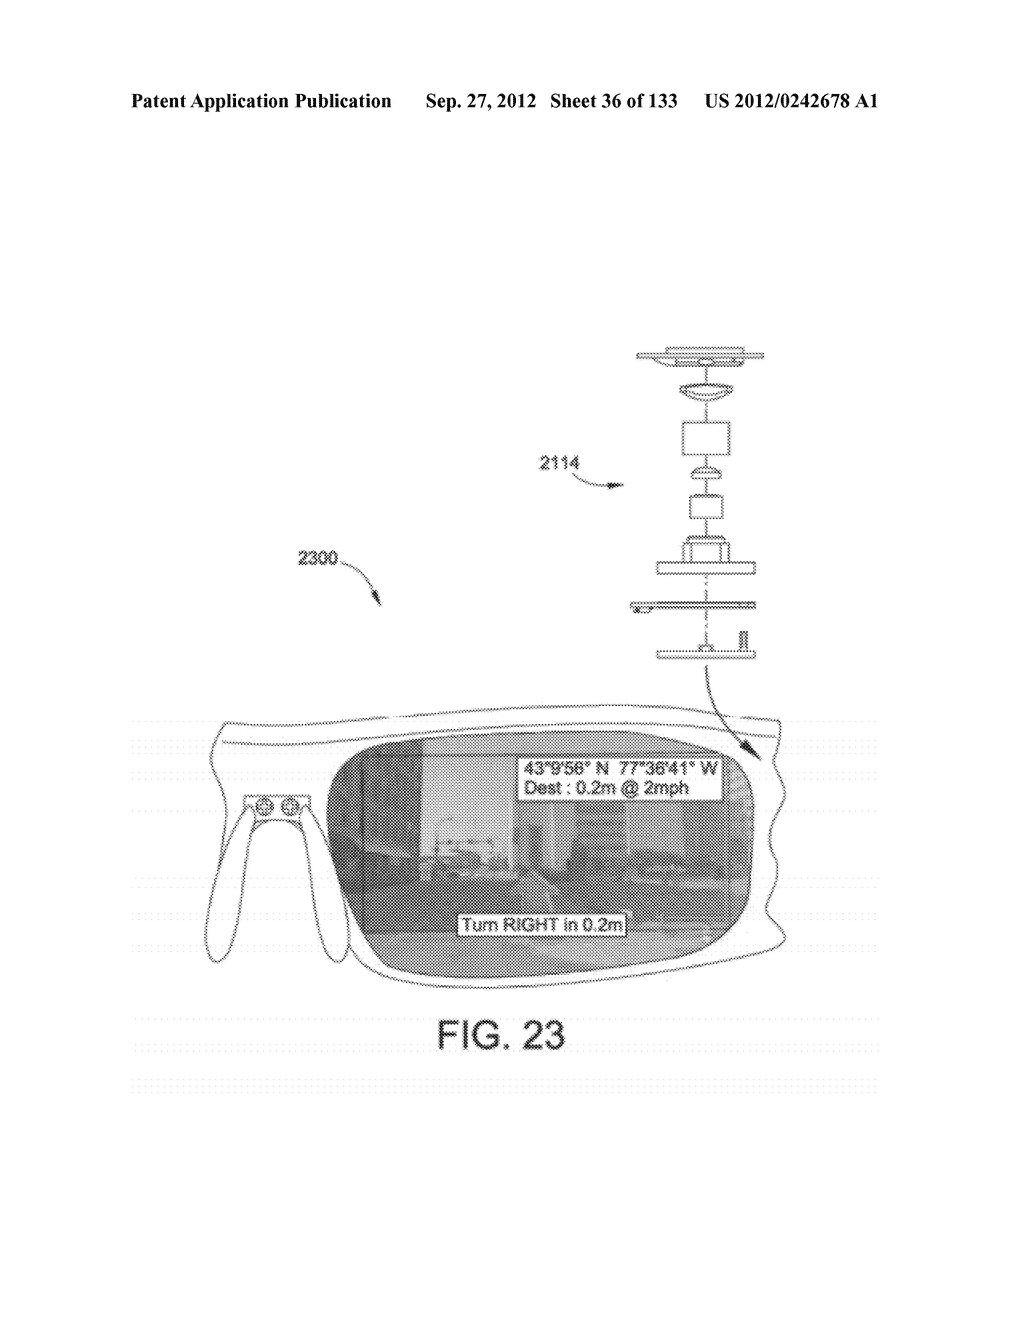 SEE-THROUGH NEAR-EYE DISPLAY GLASSES INCLUDING AN AUTO-BRIGHTNESS CONTROL     FOR THE DISPLAY BRIGHTNESS BASED ON THE BRIGHTNESS IN THE ENVIRONMENT - diagram, schematic, and image 37